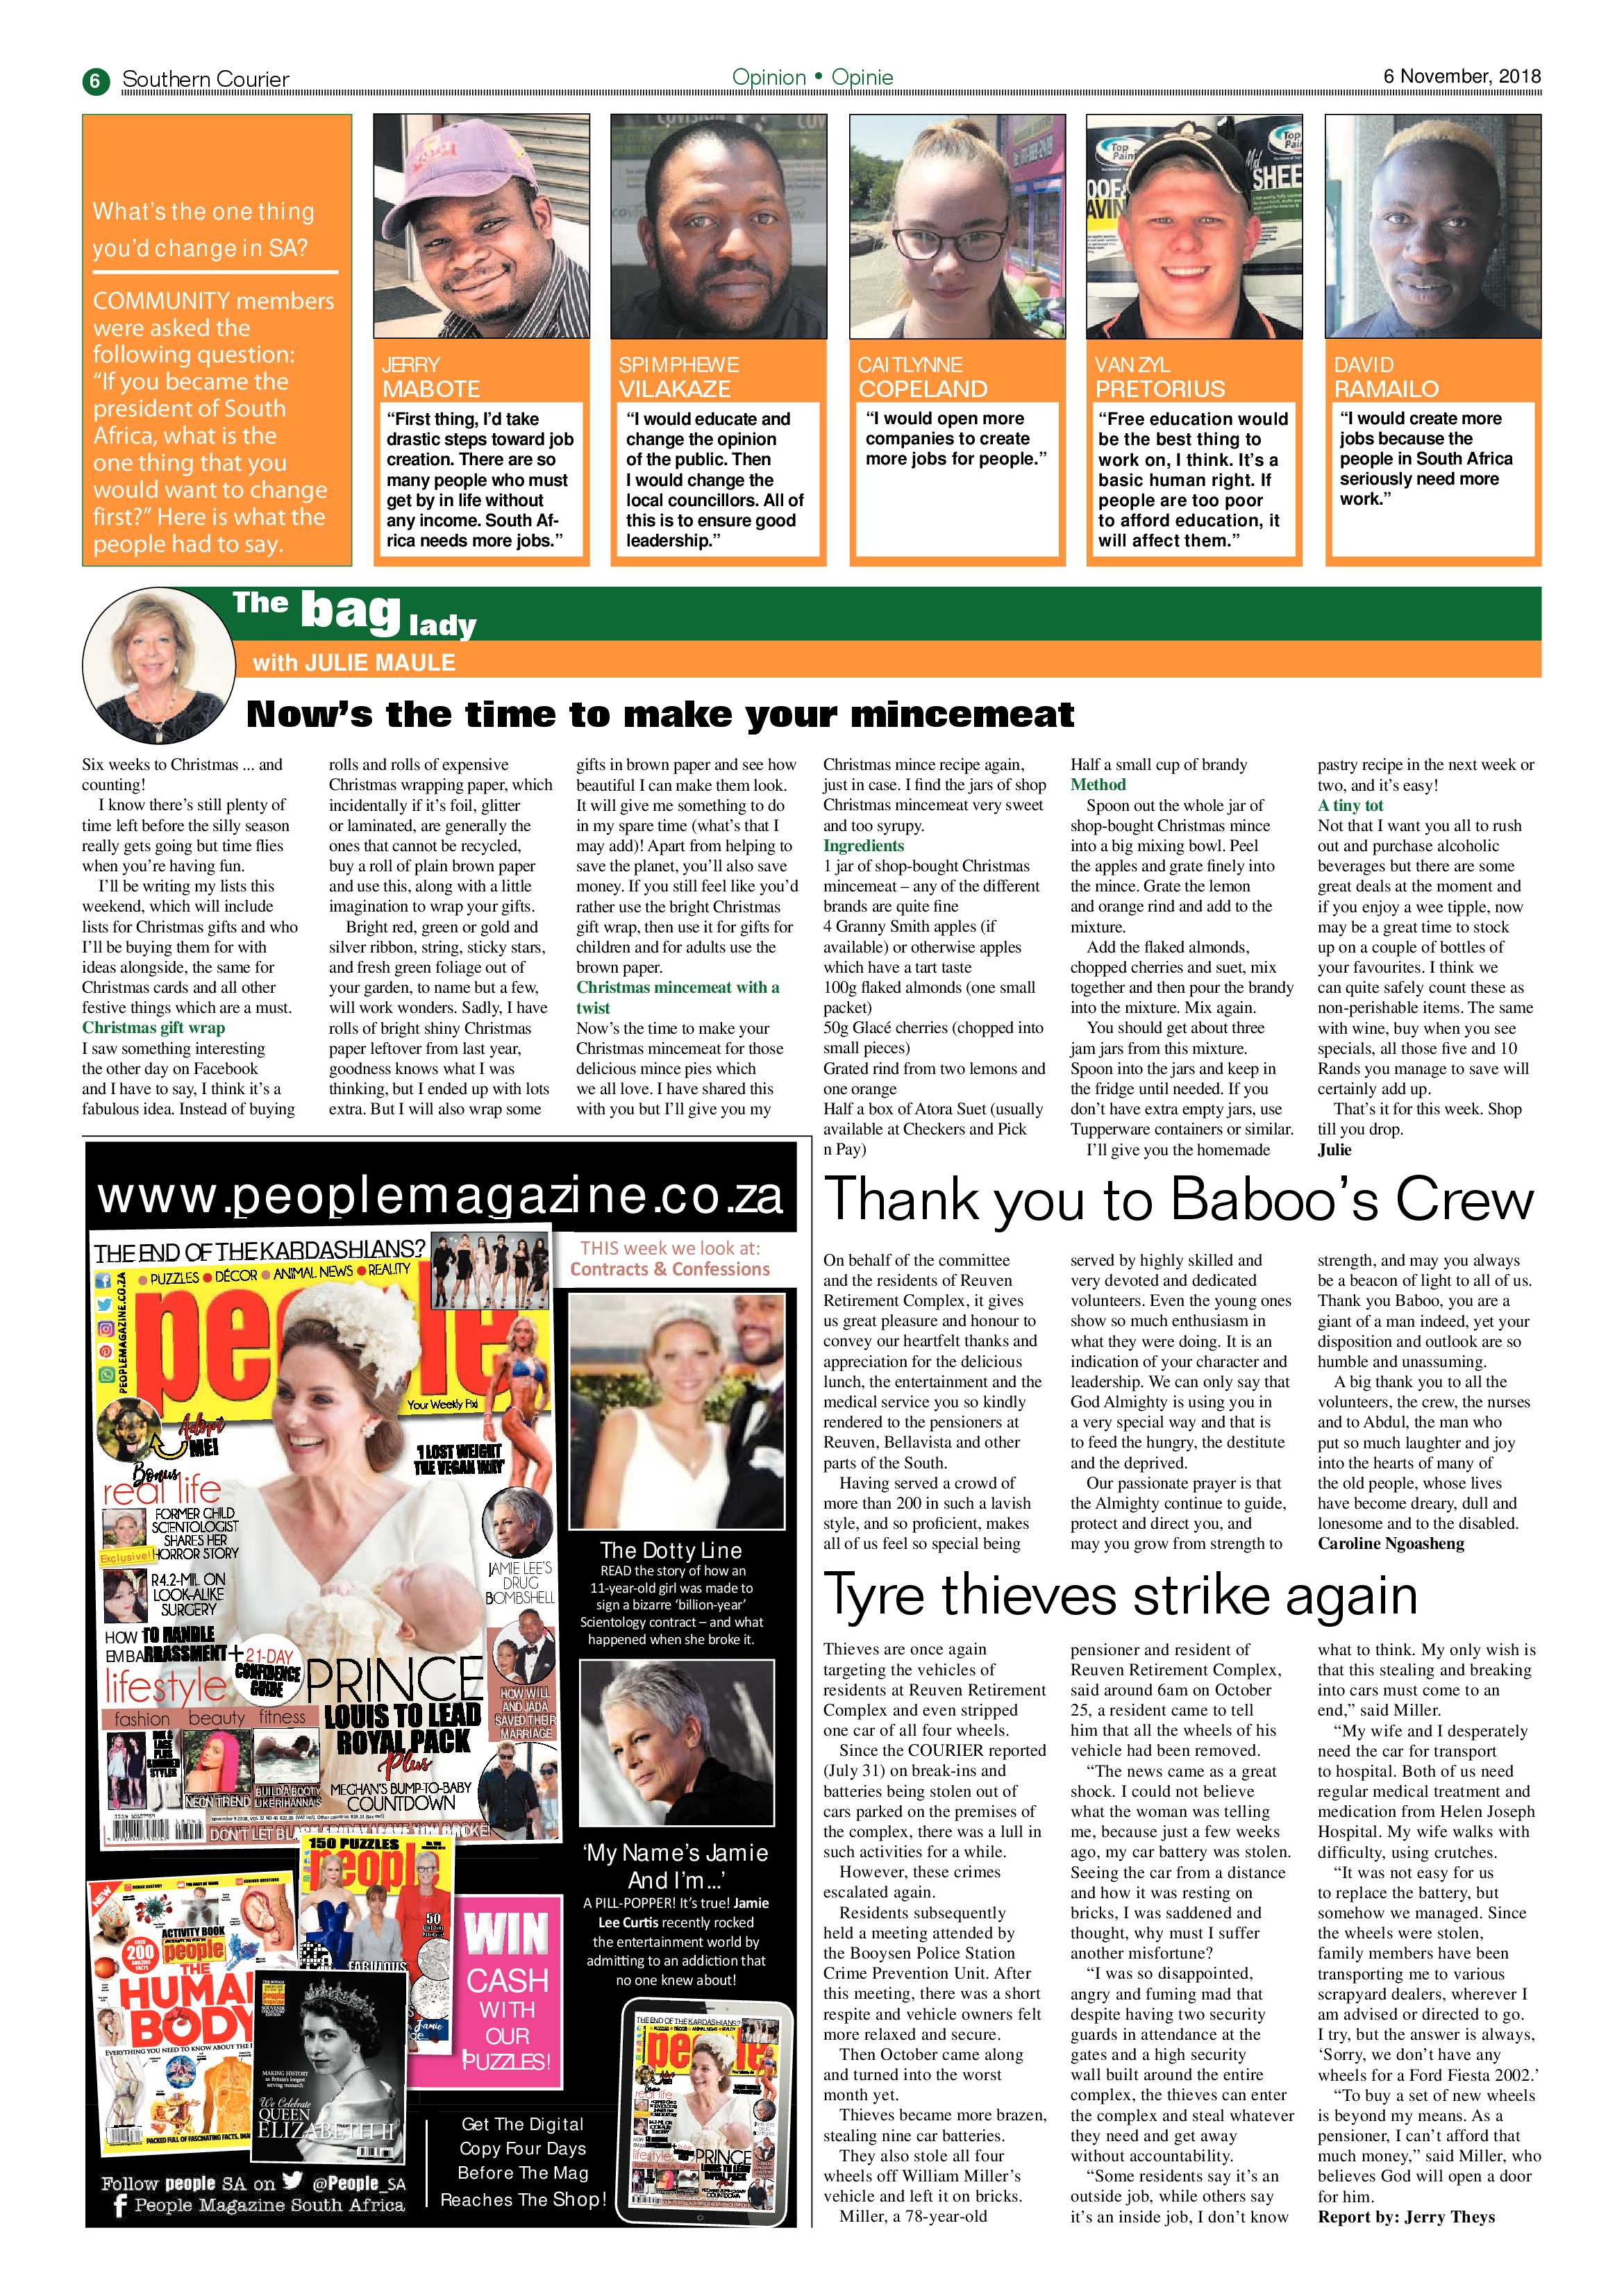 southern-courier-06-november-2018-epapers-page-6